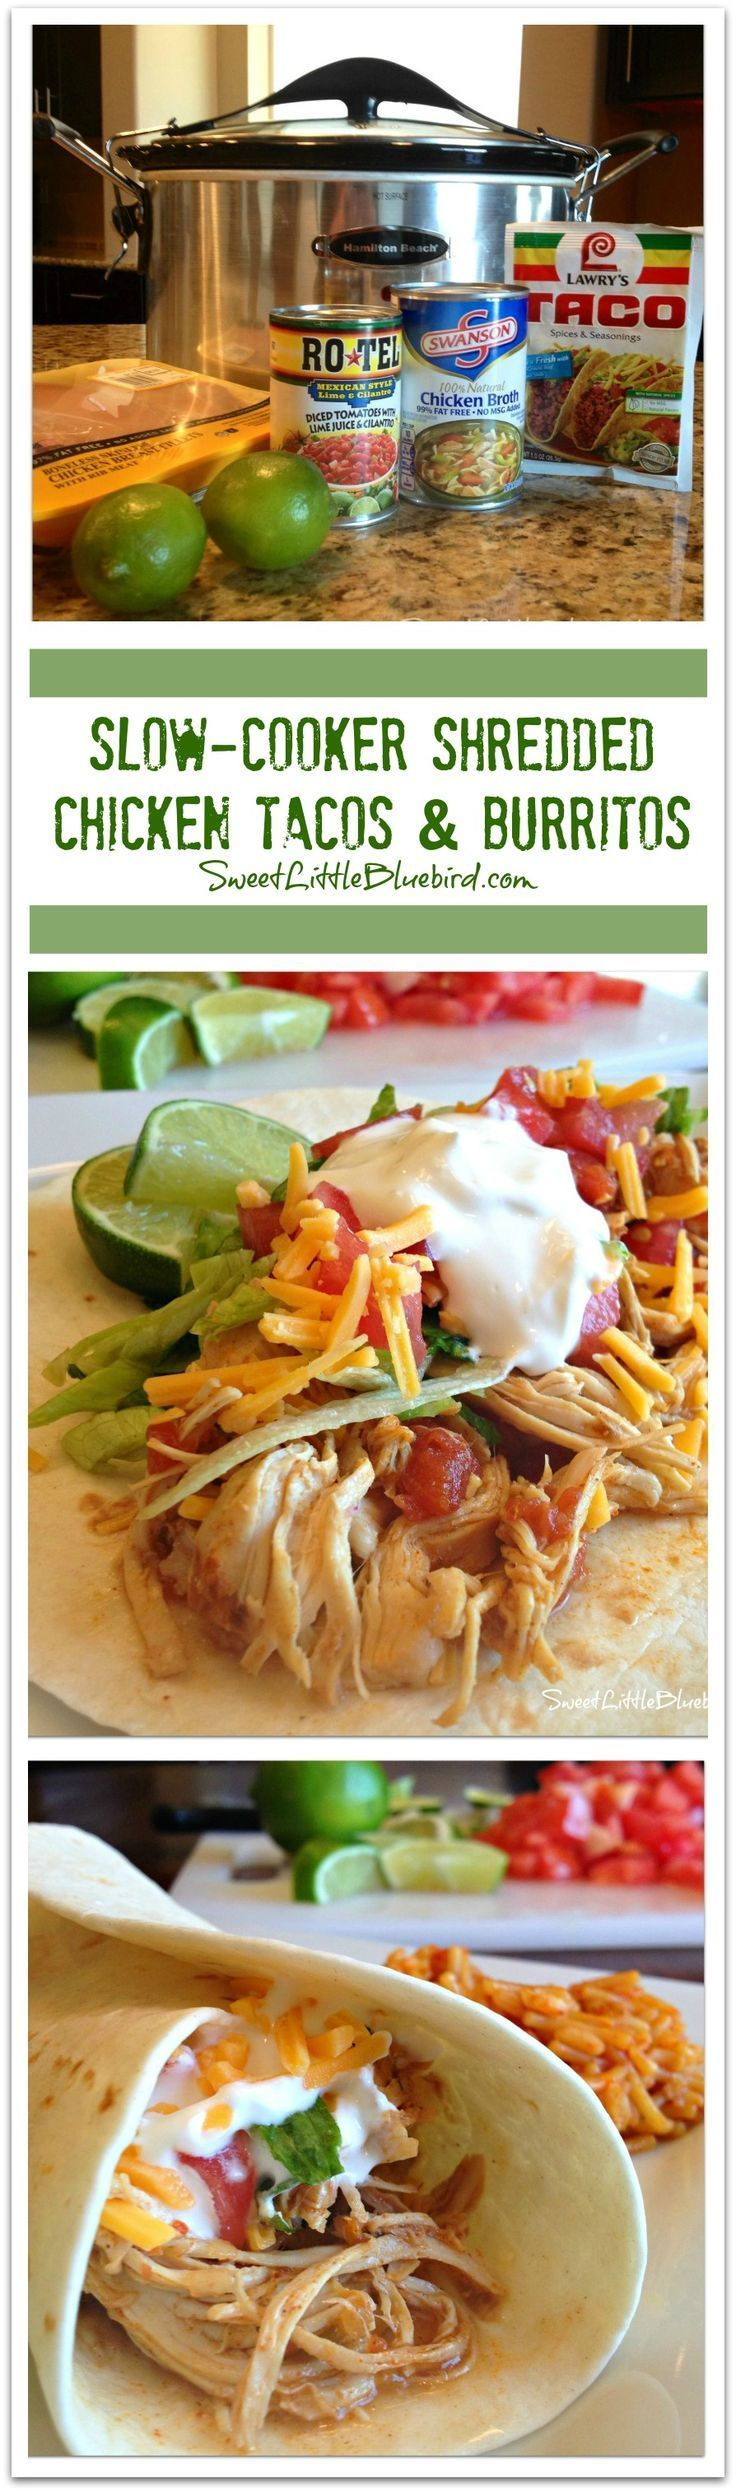 SLOW-COOKER SHREDDED CHICKEN TACOS AND BURRITOS - Just a few ingredients to make, so simple, so good. The only way I make chicken tacos and burritos!!  Tender, juicy, delicious!!